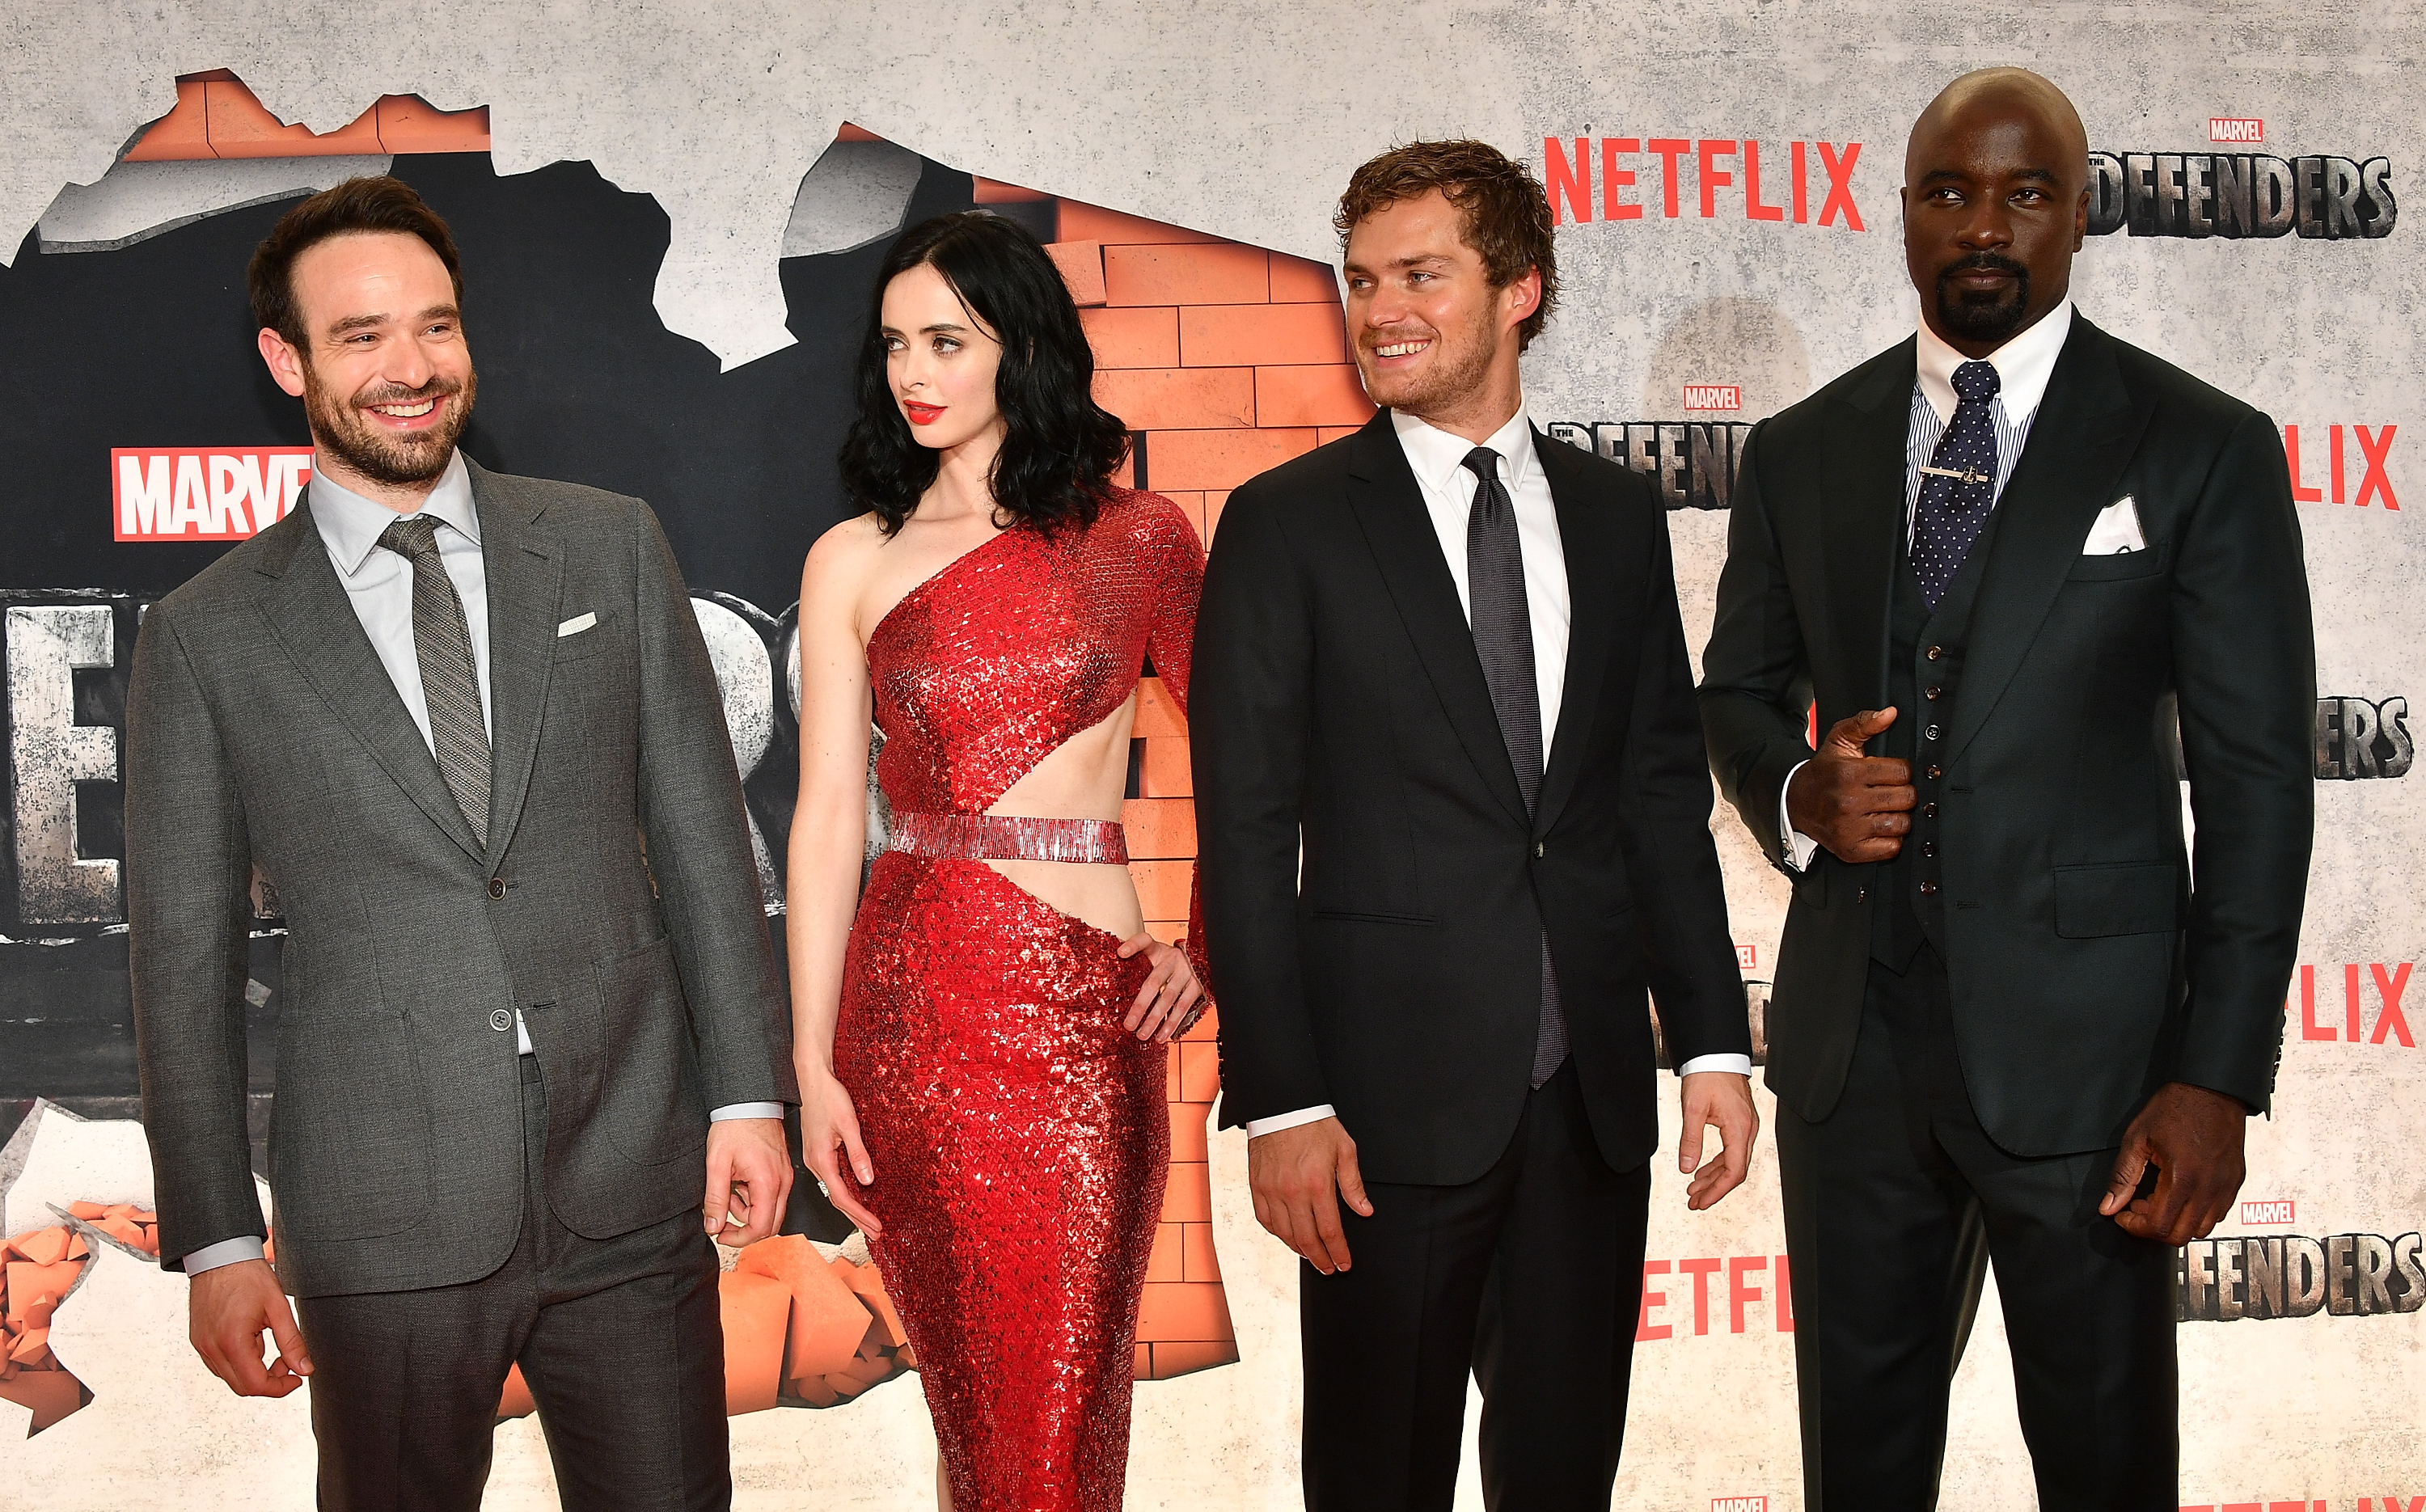 Watch The Final Trailer For 'Marvel's The Defenders'